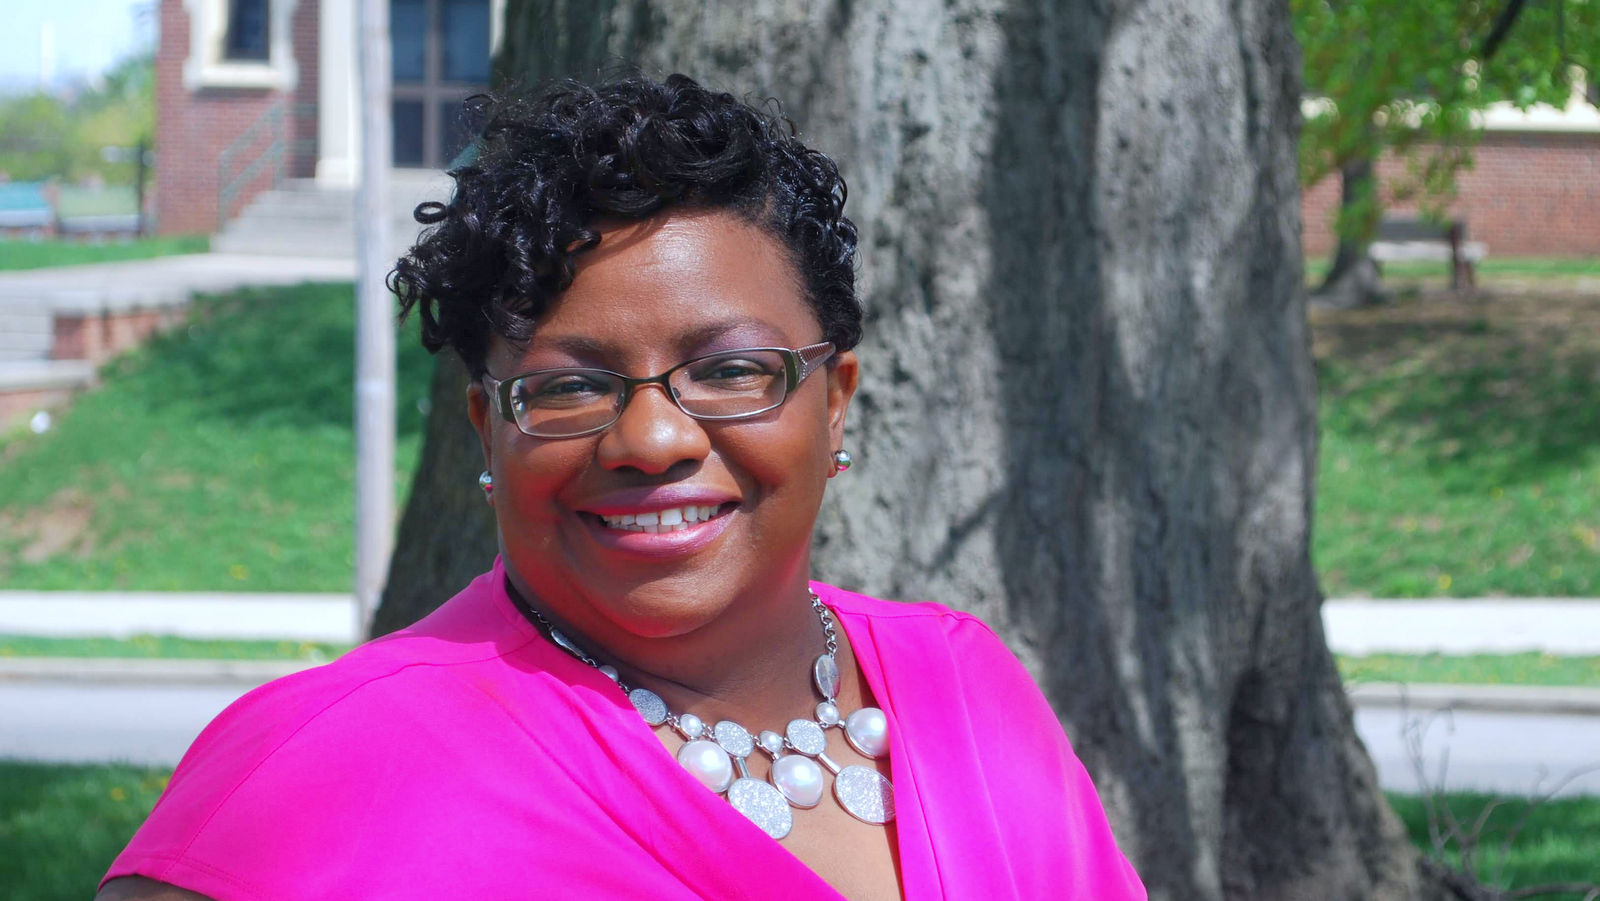 Westport Neighborhood Association president Keisha Allen is hoping to win a City Council seat. (Handout photo)